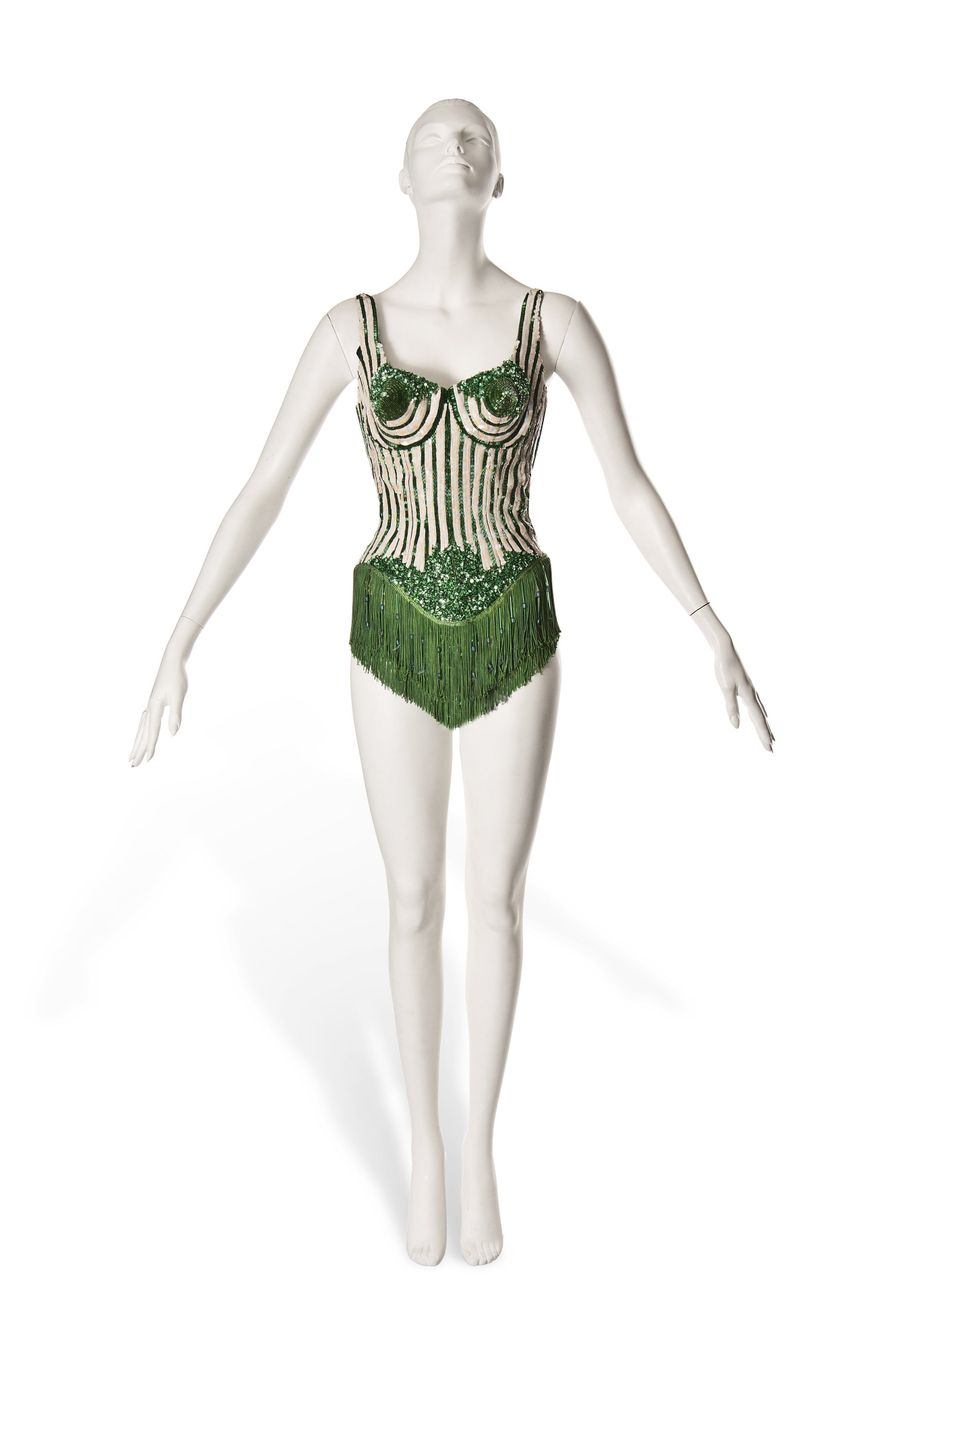 A couture corset in green silk with conical cups and beaded fringe, embroidered with candy stripes of opalescent sequins and